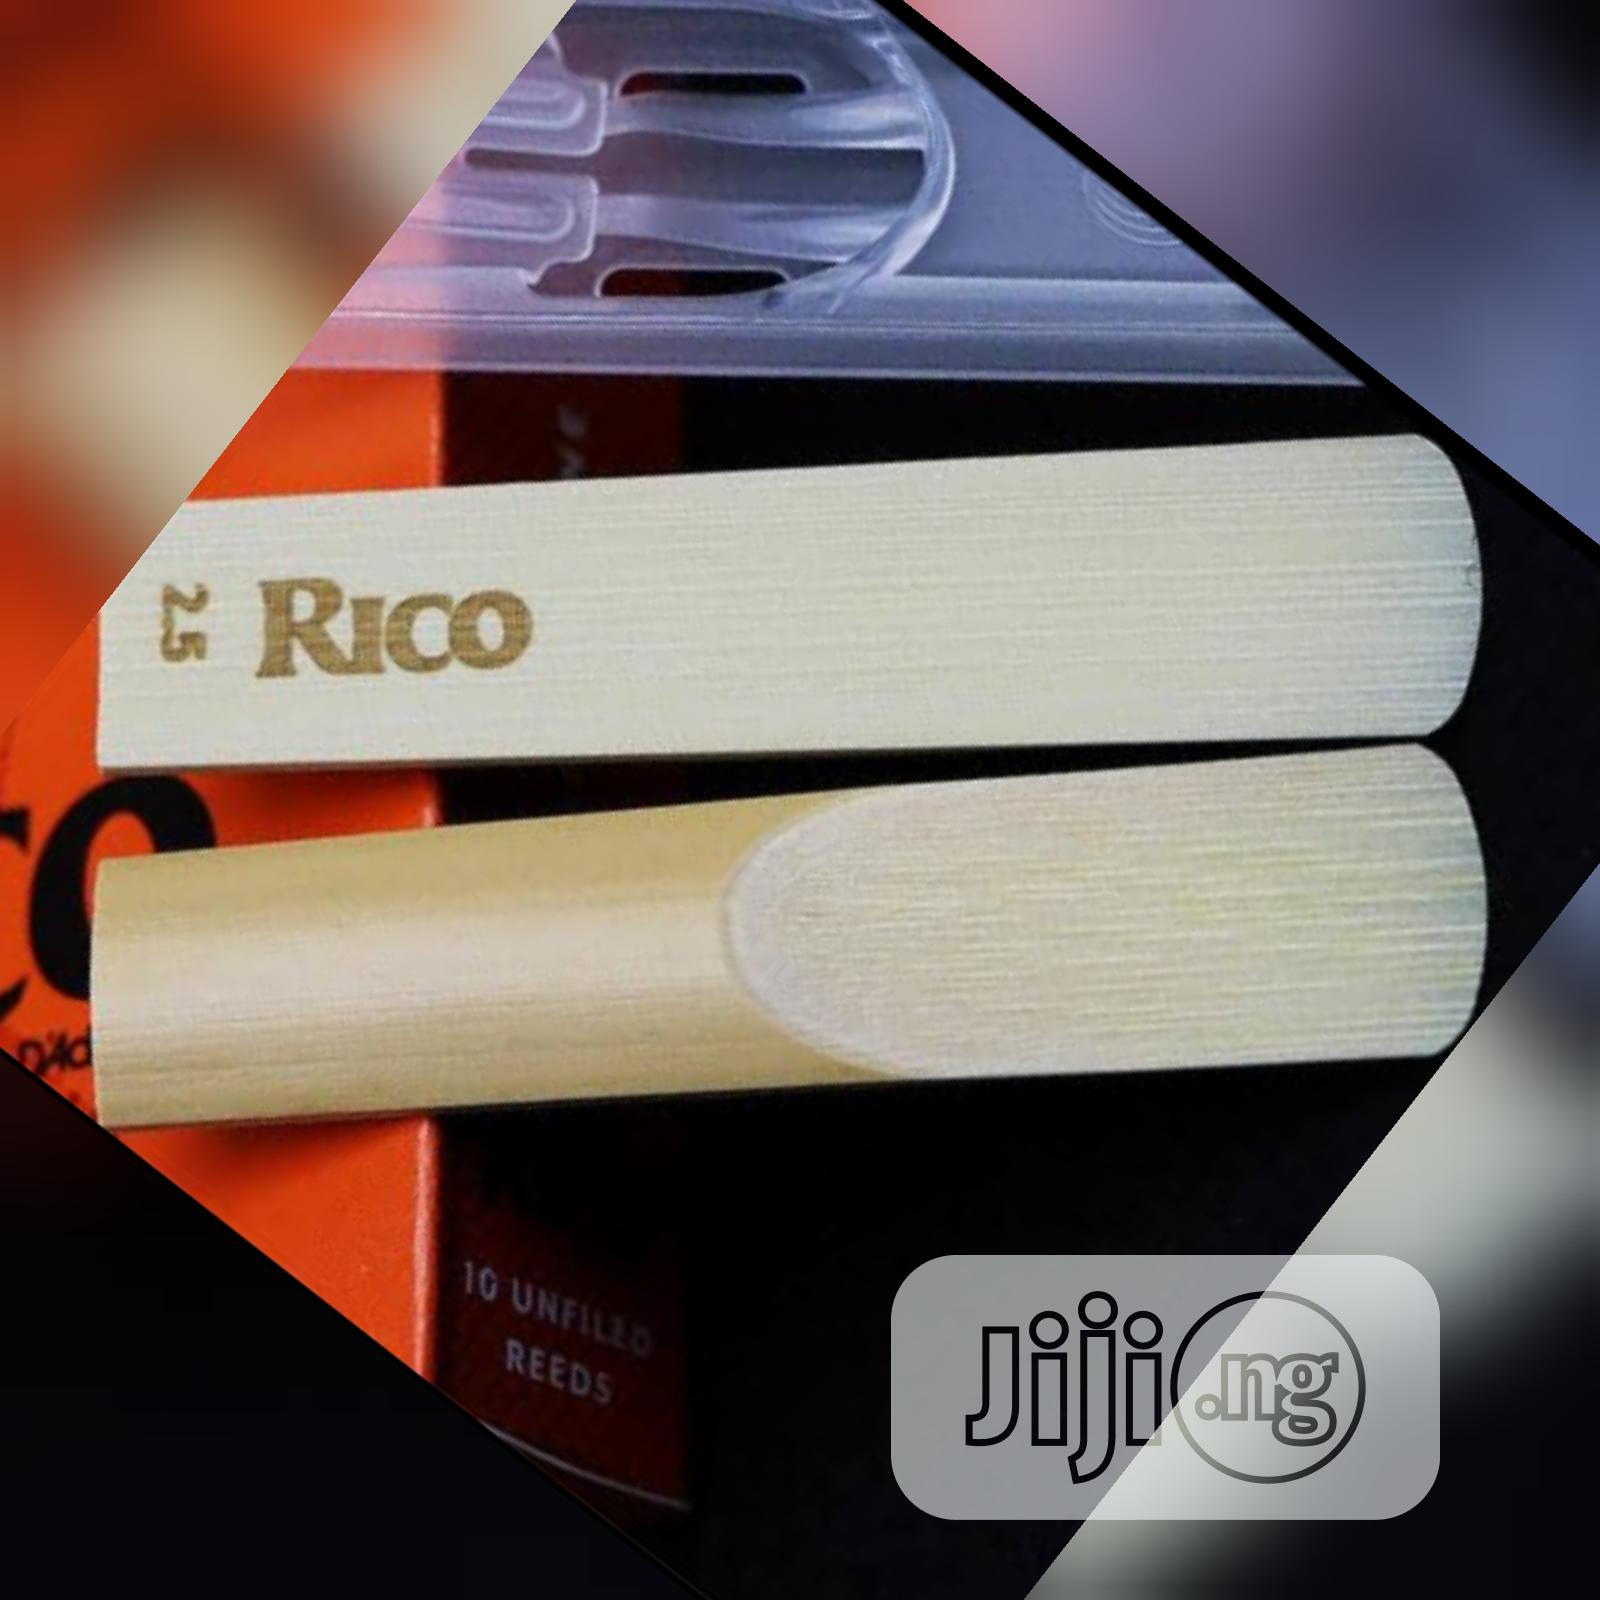 Rico 1 Unfiled Alto Saxophone Classic High-quality Reed | Musical Instruments & Gear for sale in Gbagada, Lagos State, Nigeria